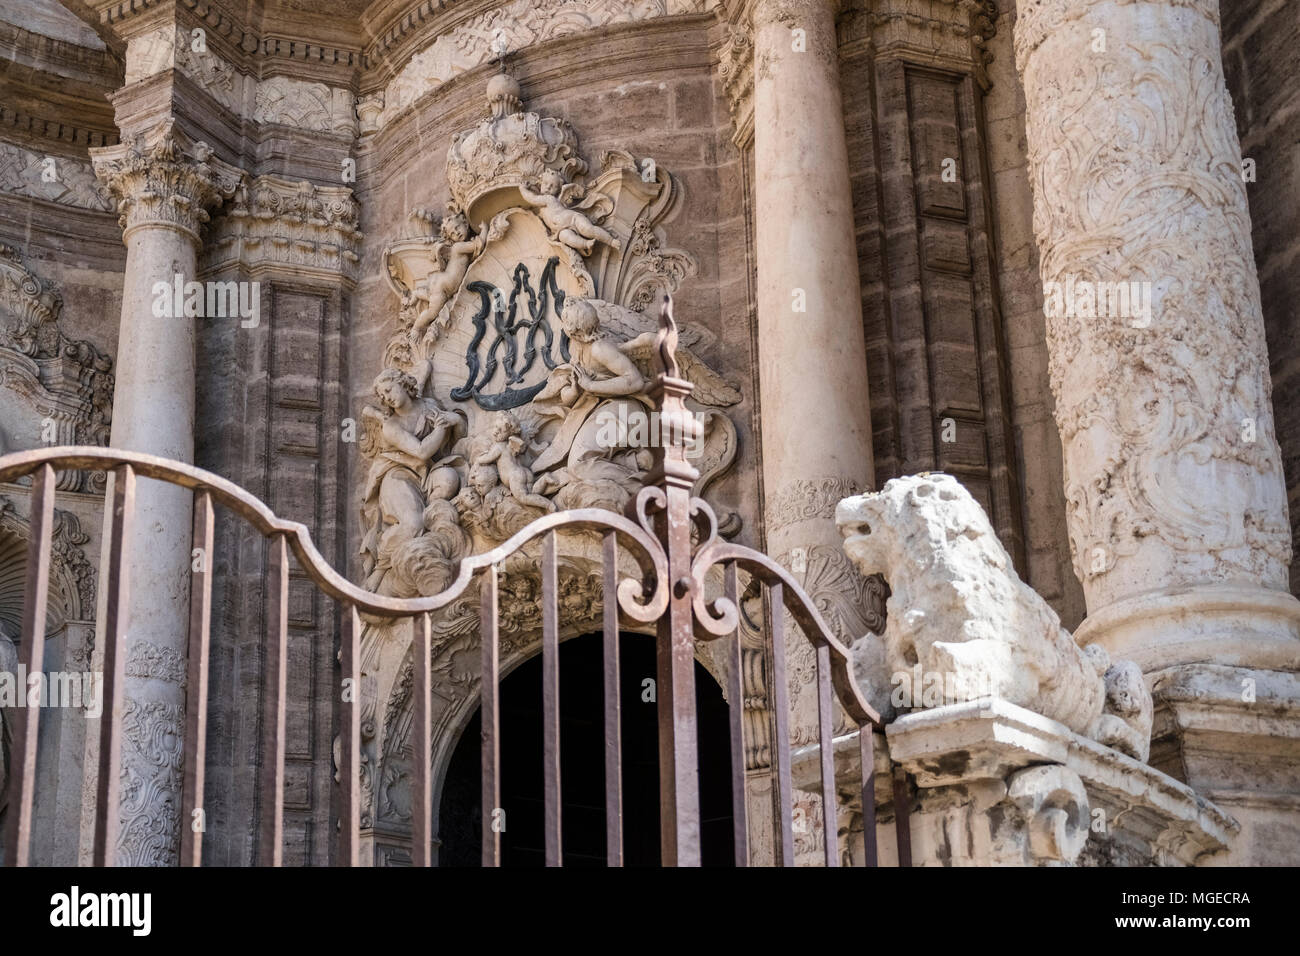 Close up detail of baroque style entrance to Valencia Cathedral, North Ciutat Vella district, Valencia, Spain - Stock Image